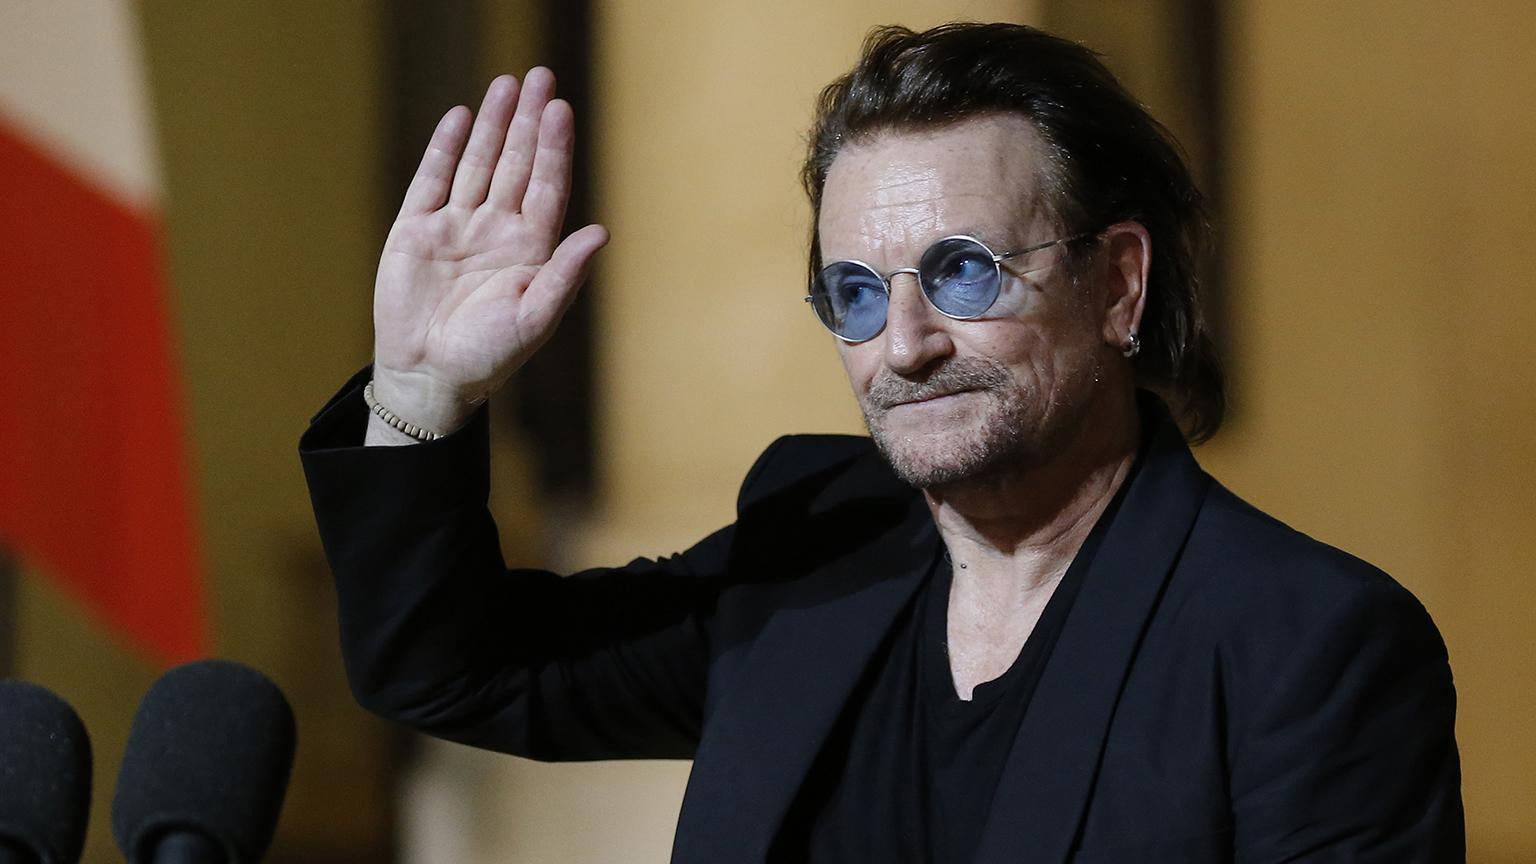 In this Monday, Sept. 10, 2018, file photo, U2 singer Bono waves goodbye to the media after a meeting with French President Emmanuel Macron at the Elysee Palace in Paris, France. (Michel Euler / AP File Photo)